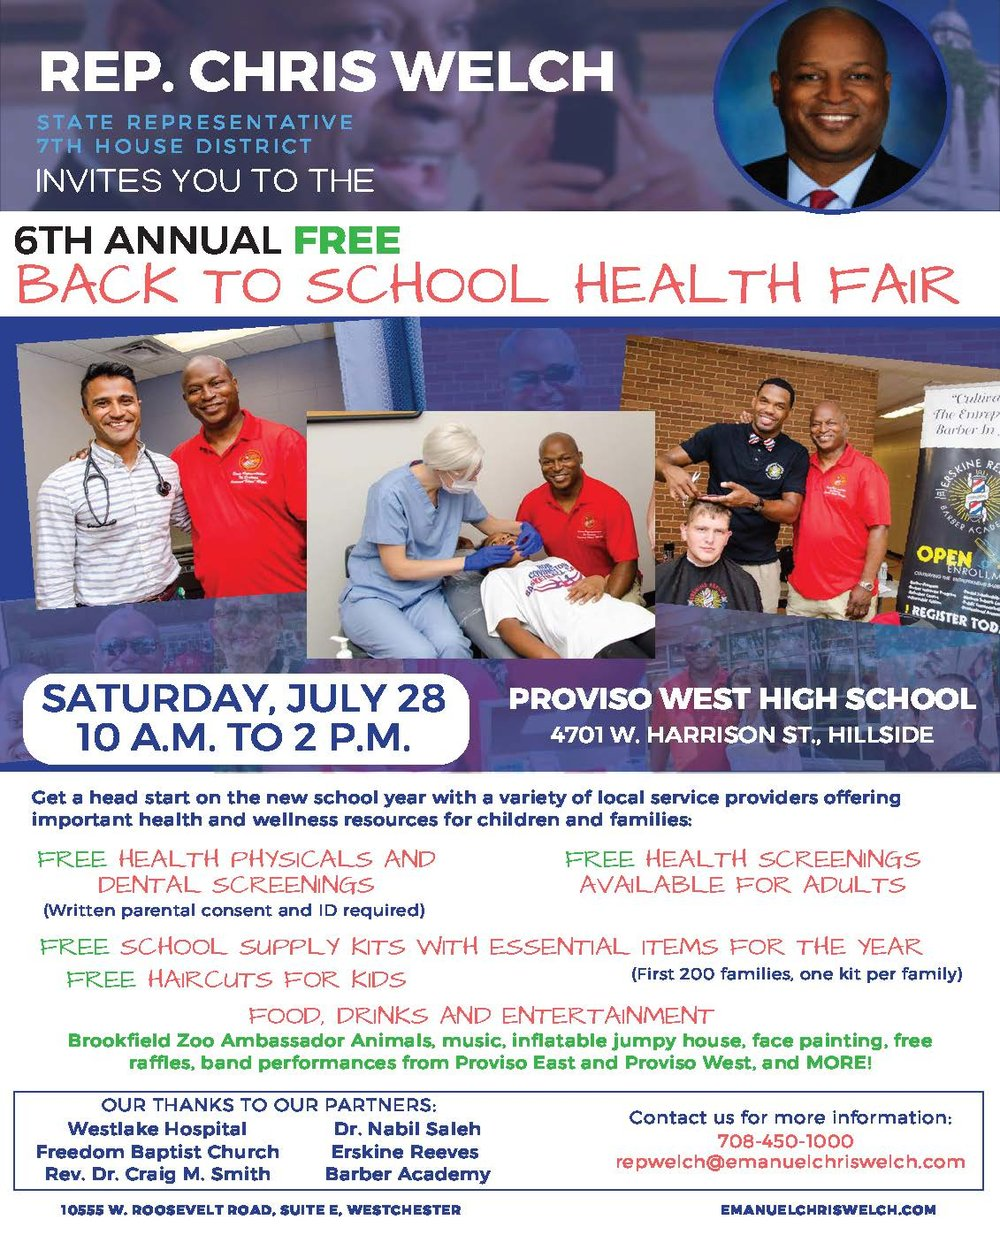 Rep. Welch Back to School Health Fair flyer  2018.jpg